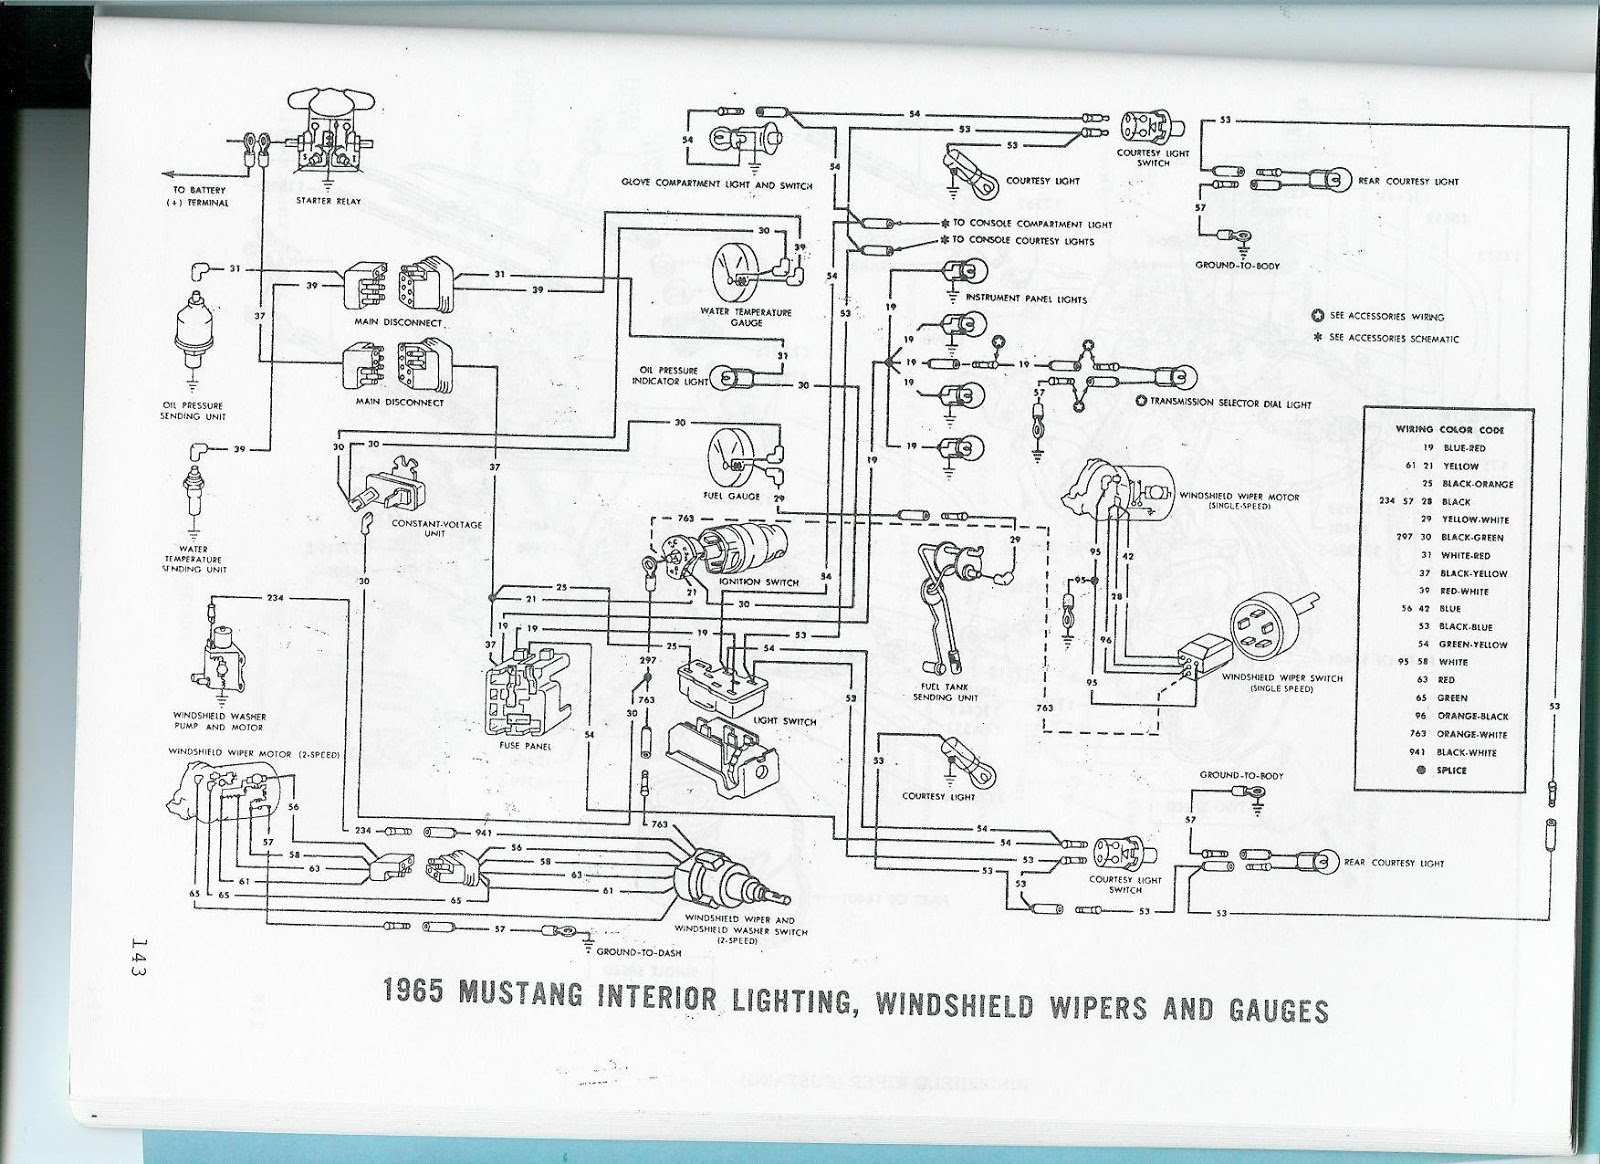 1970 chevelle windshield wiper motor wiring diagram wiring library 1966 chevelle windshield wiper washer wiring diagram 65 chevelle wiper motor wiring  [ 1600 x 1164 Pixel ]